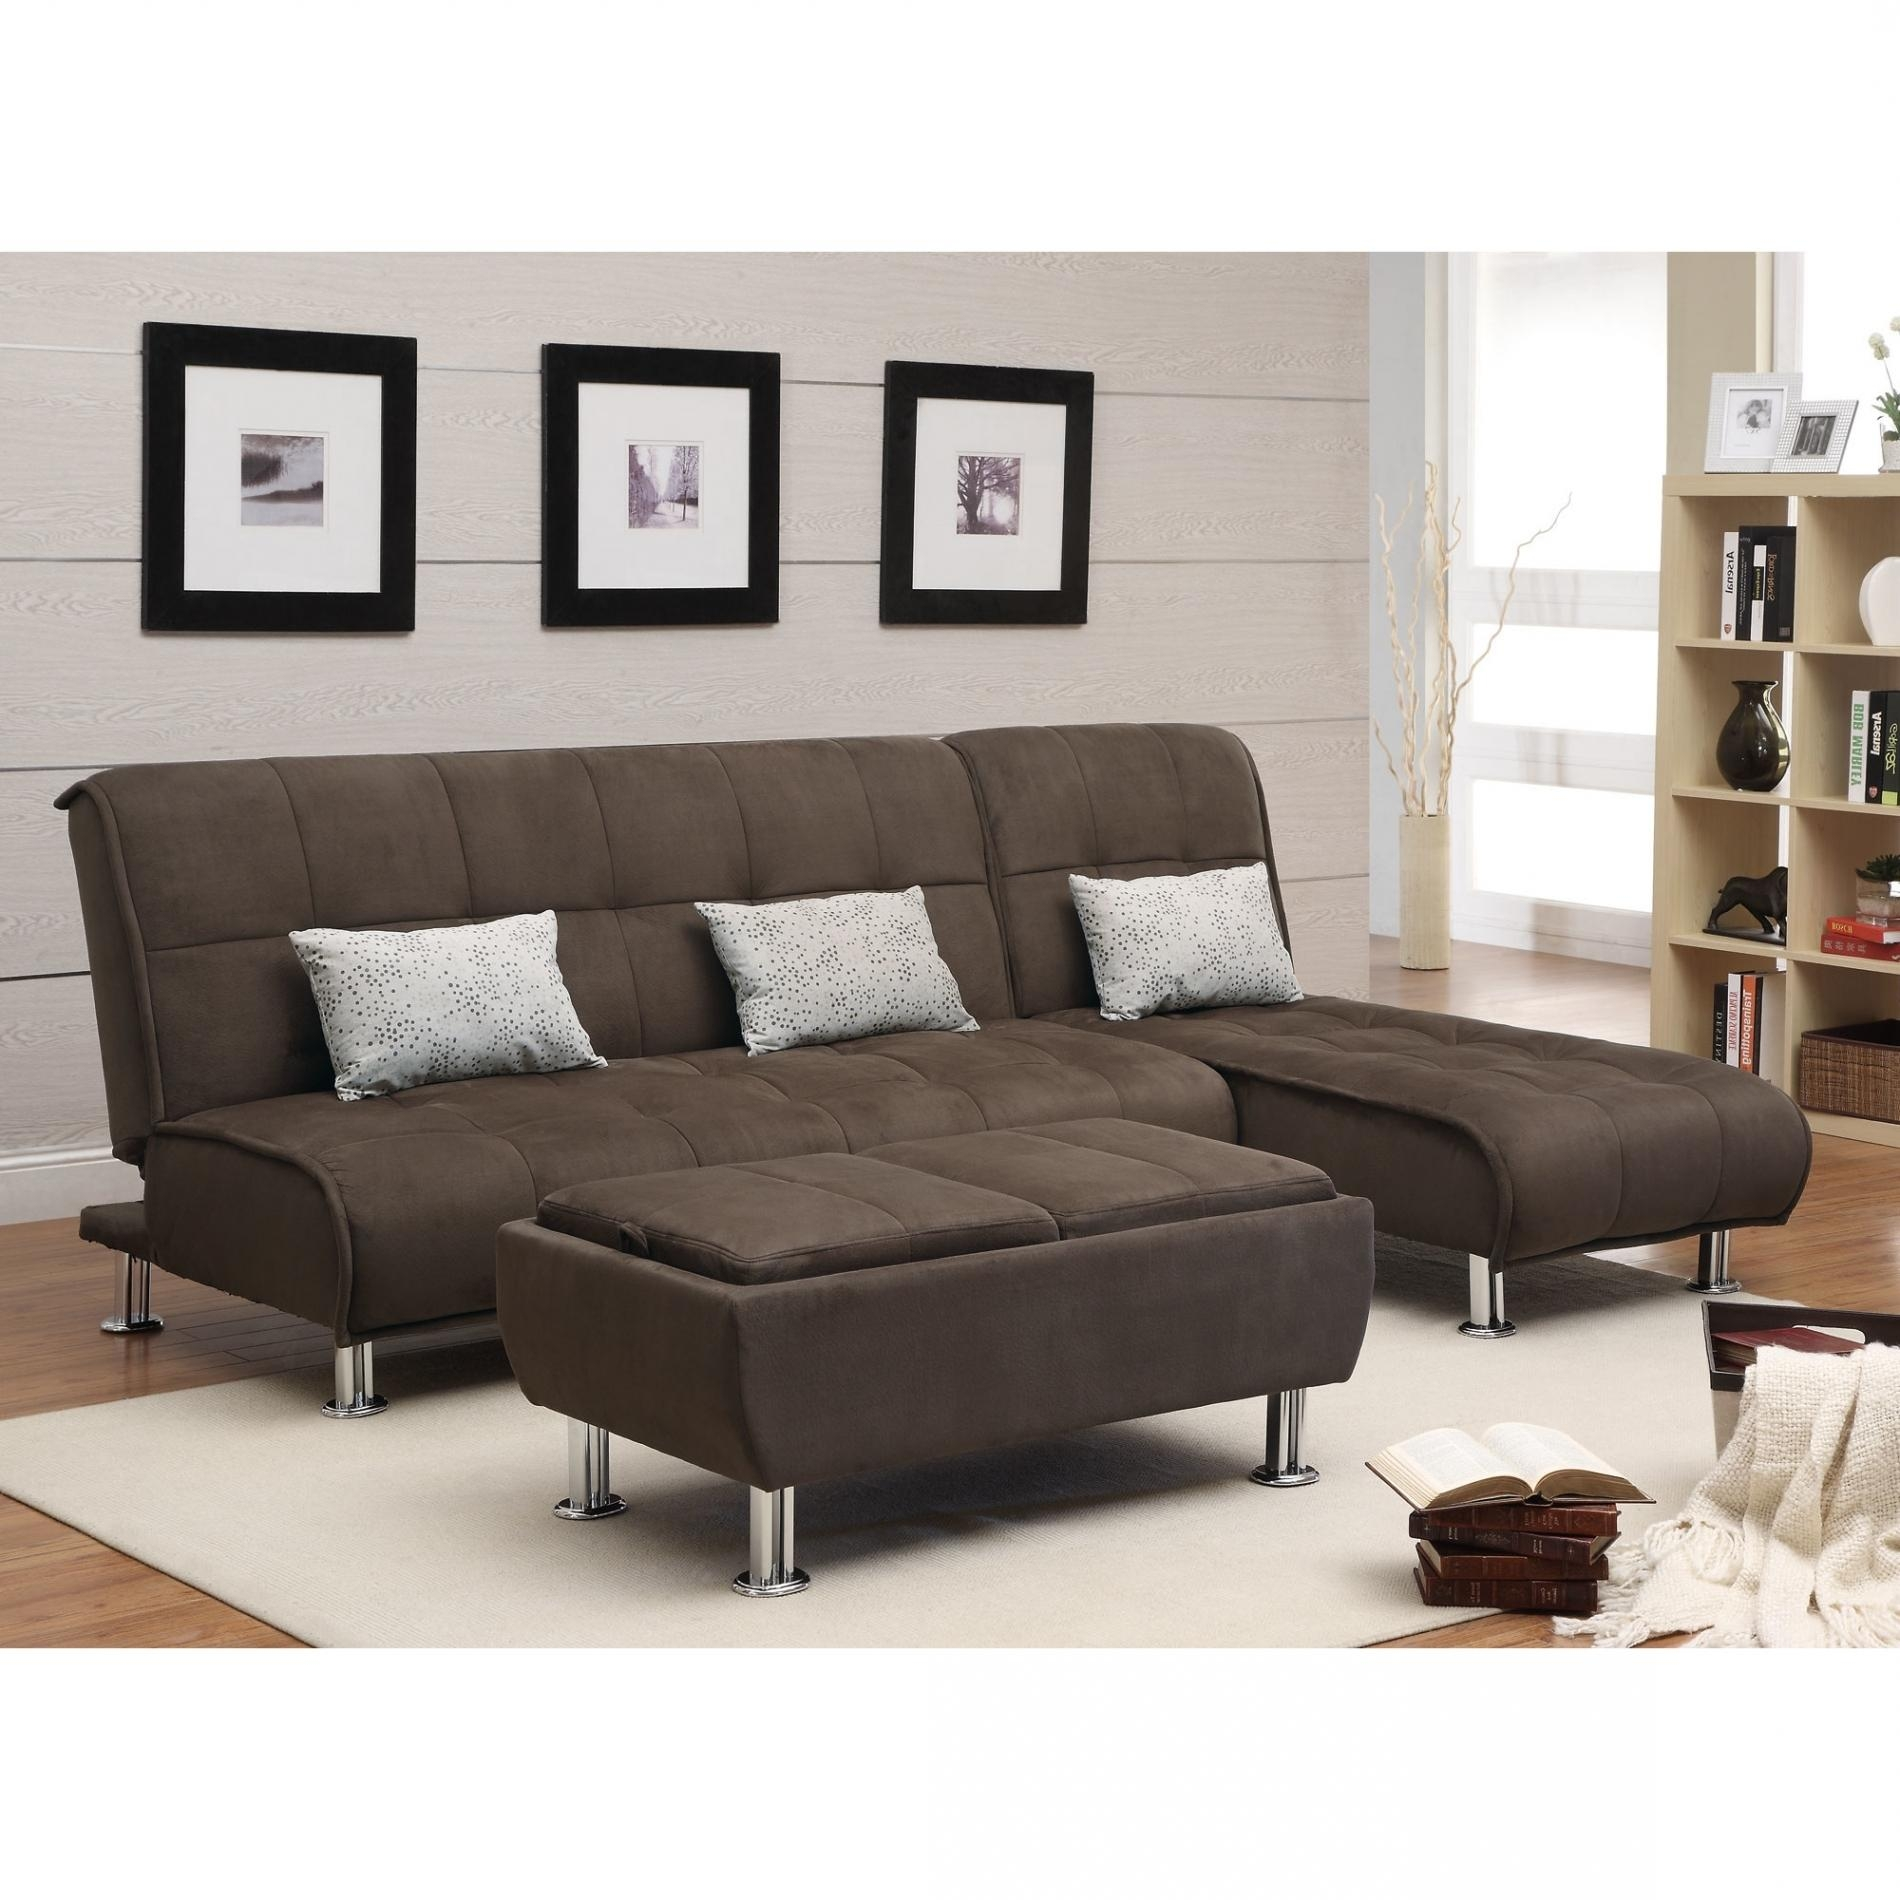 Our Most Comfortable Sleeper Sofa – Room & Board Regarding New Intended For Room And Board Comfort Sleepers (Image 10 of 20)